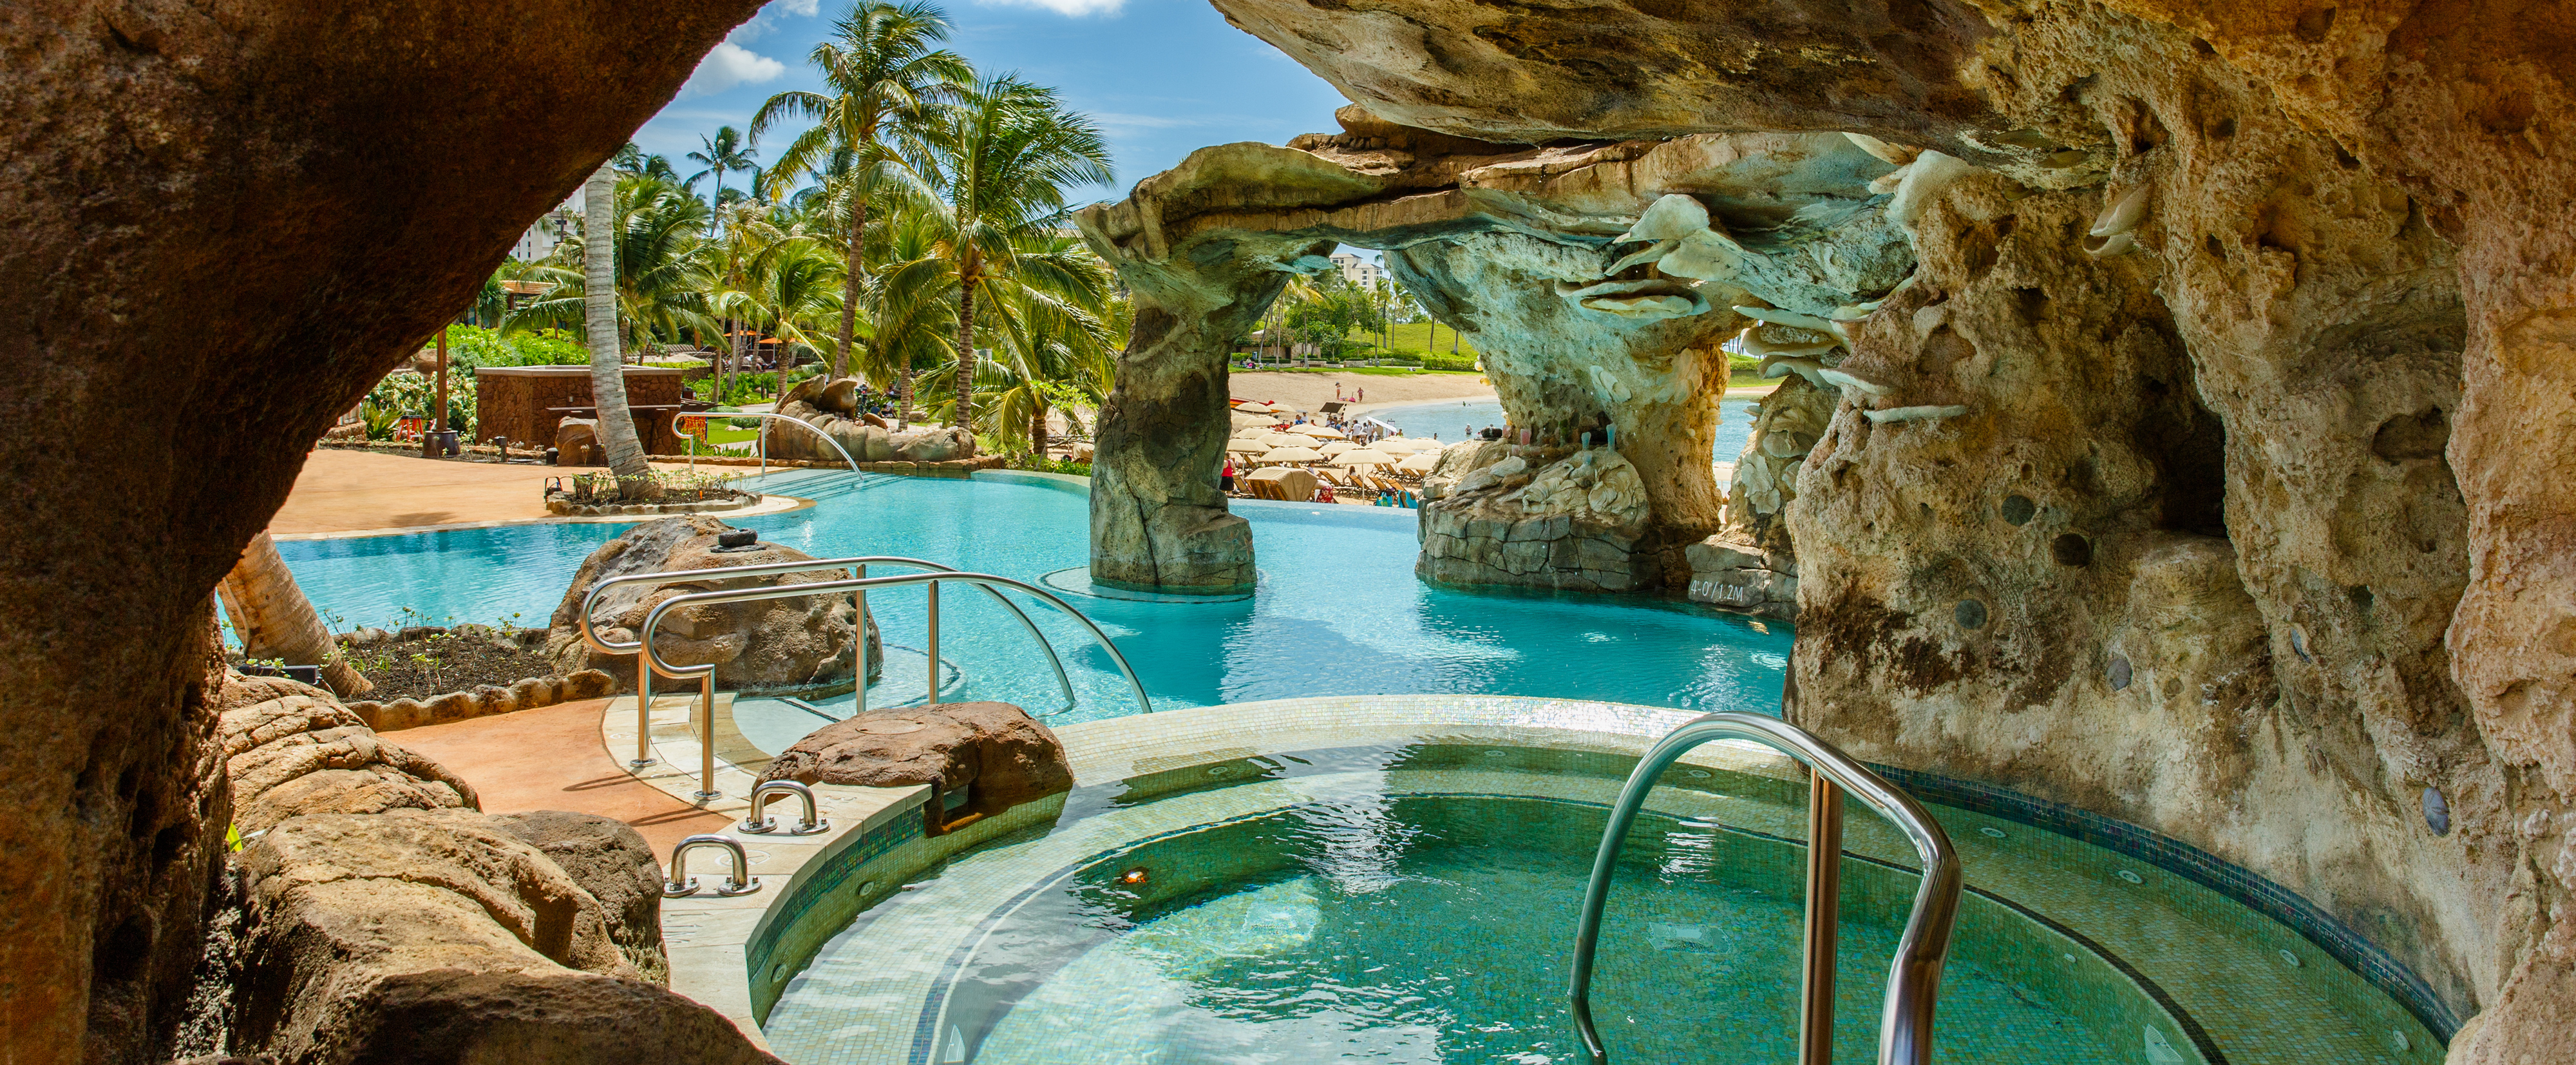 A rocky outcropping surrounds a hot tub that leads into the waters of Ka Maka Grotto oceanfront pool